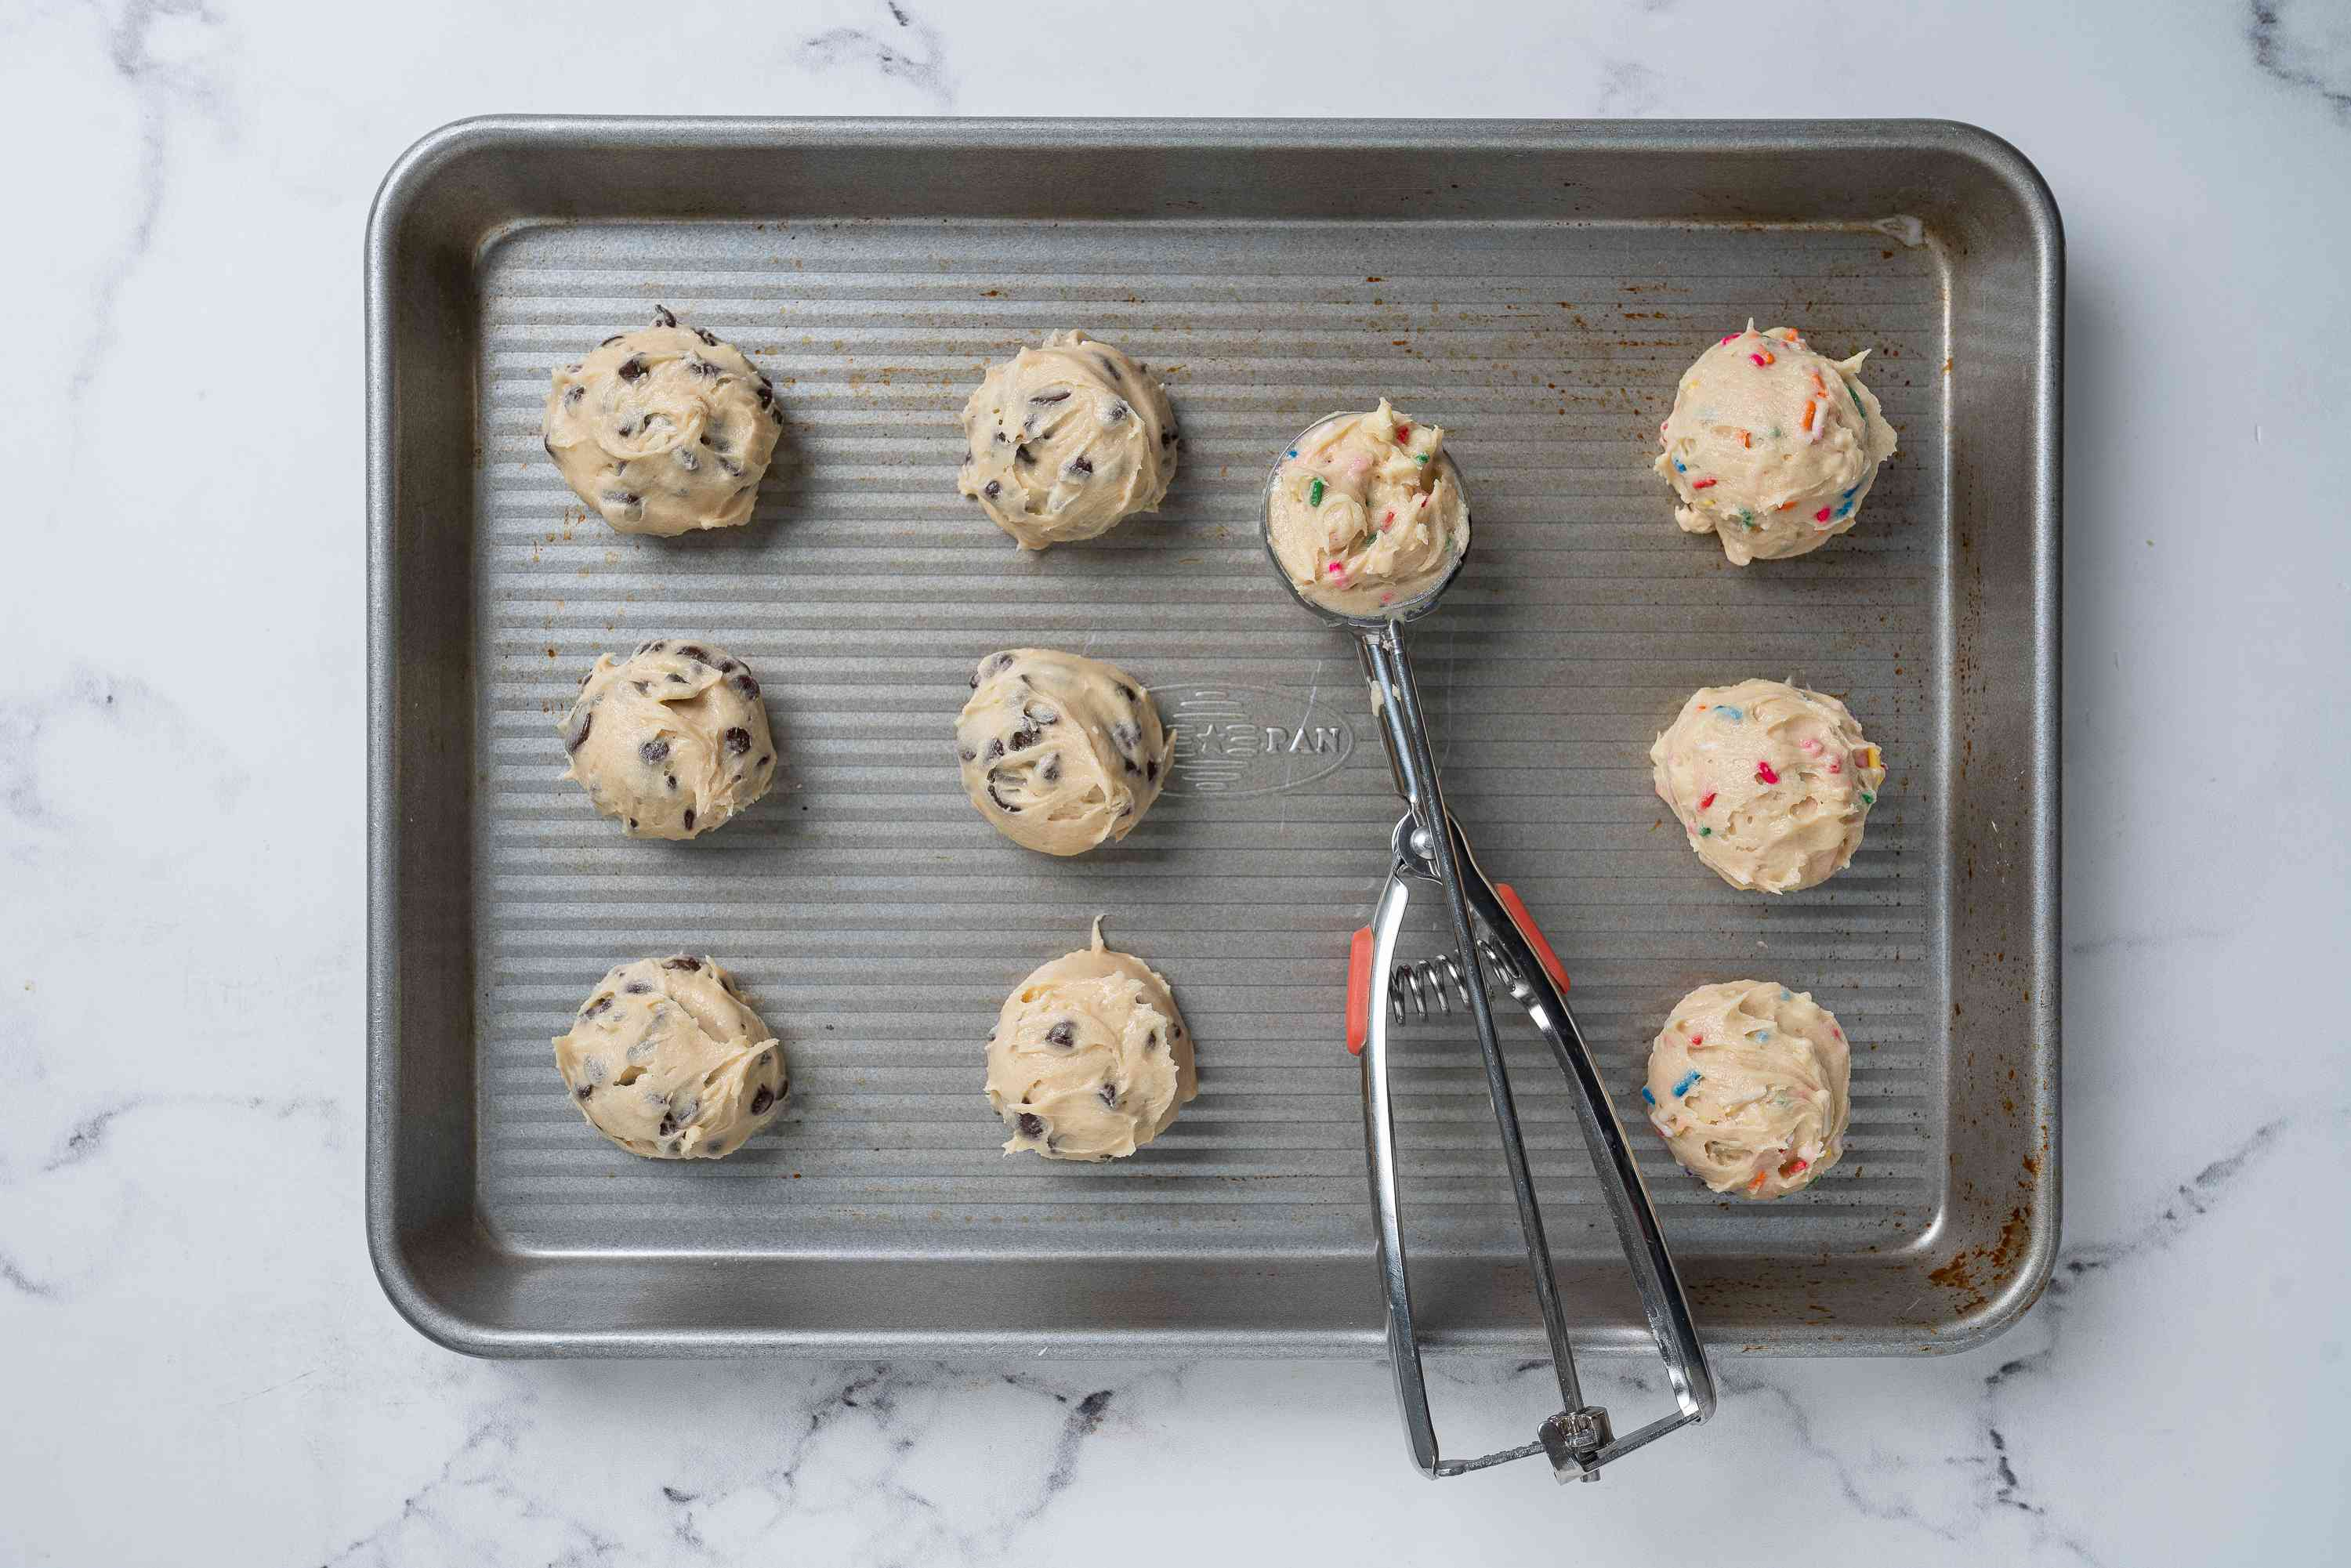 Edible Cookie Dough portioned on a cookie sheet